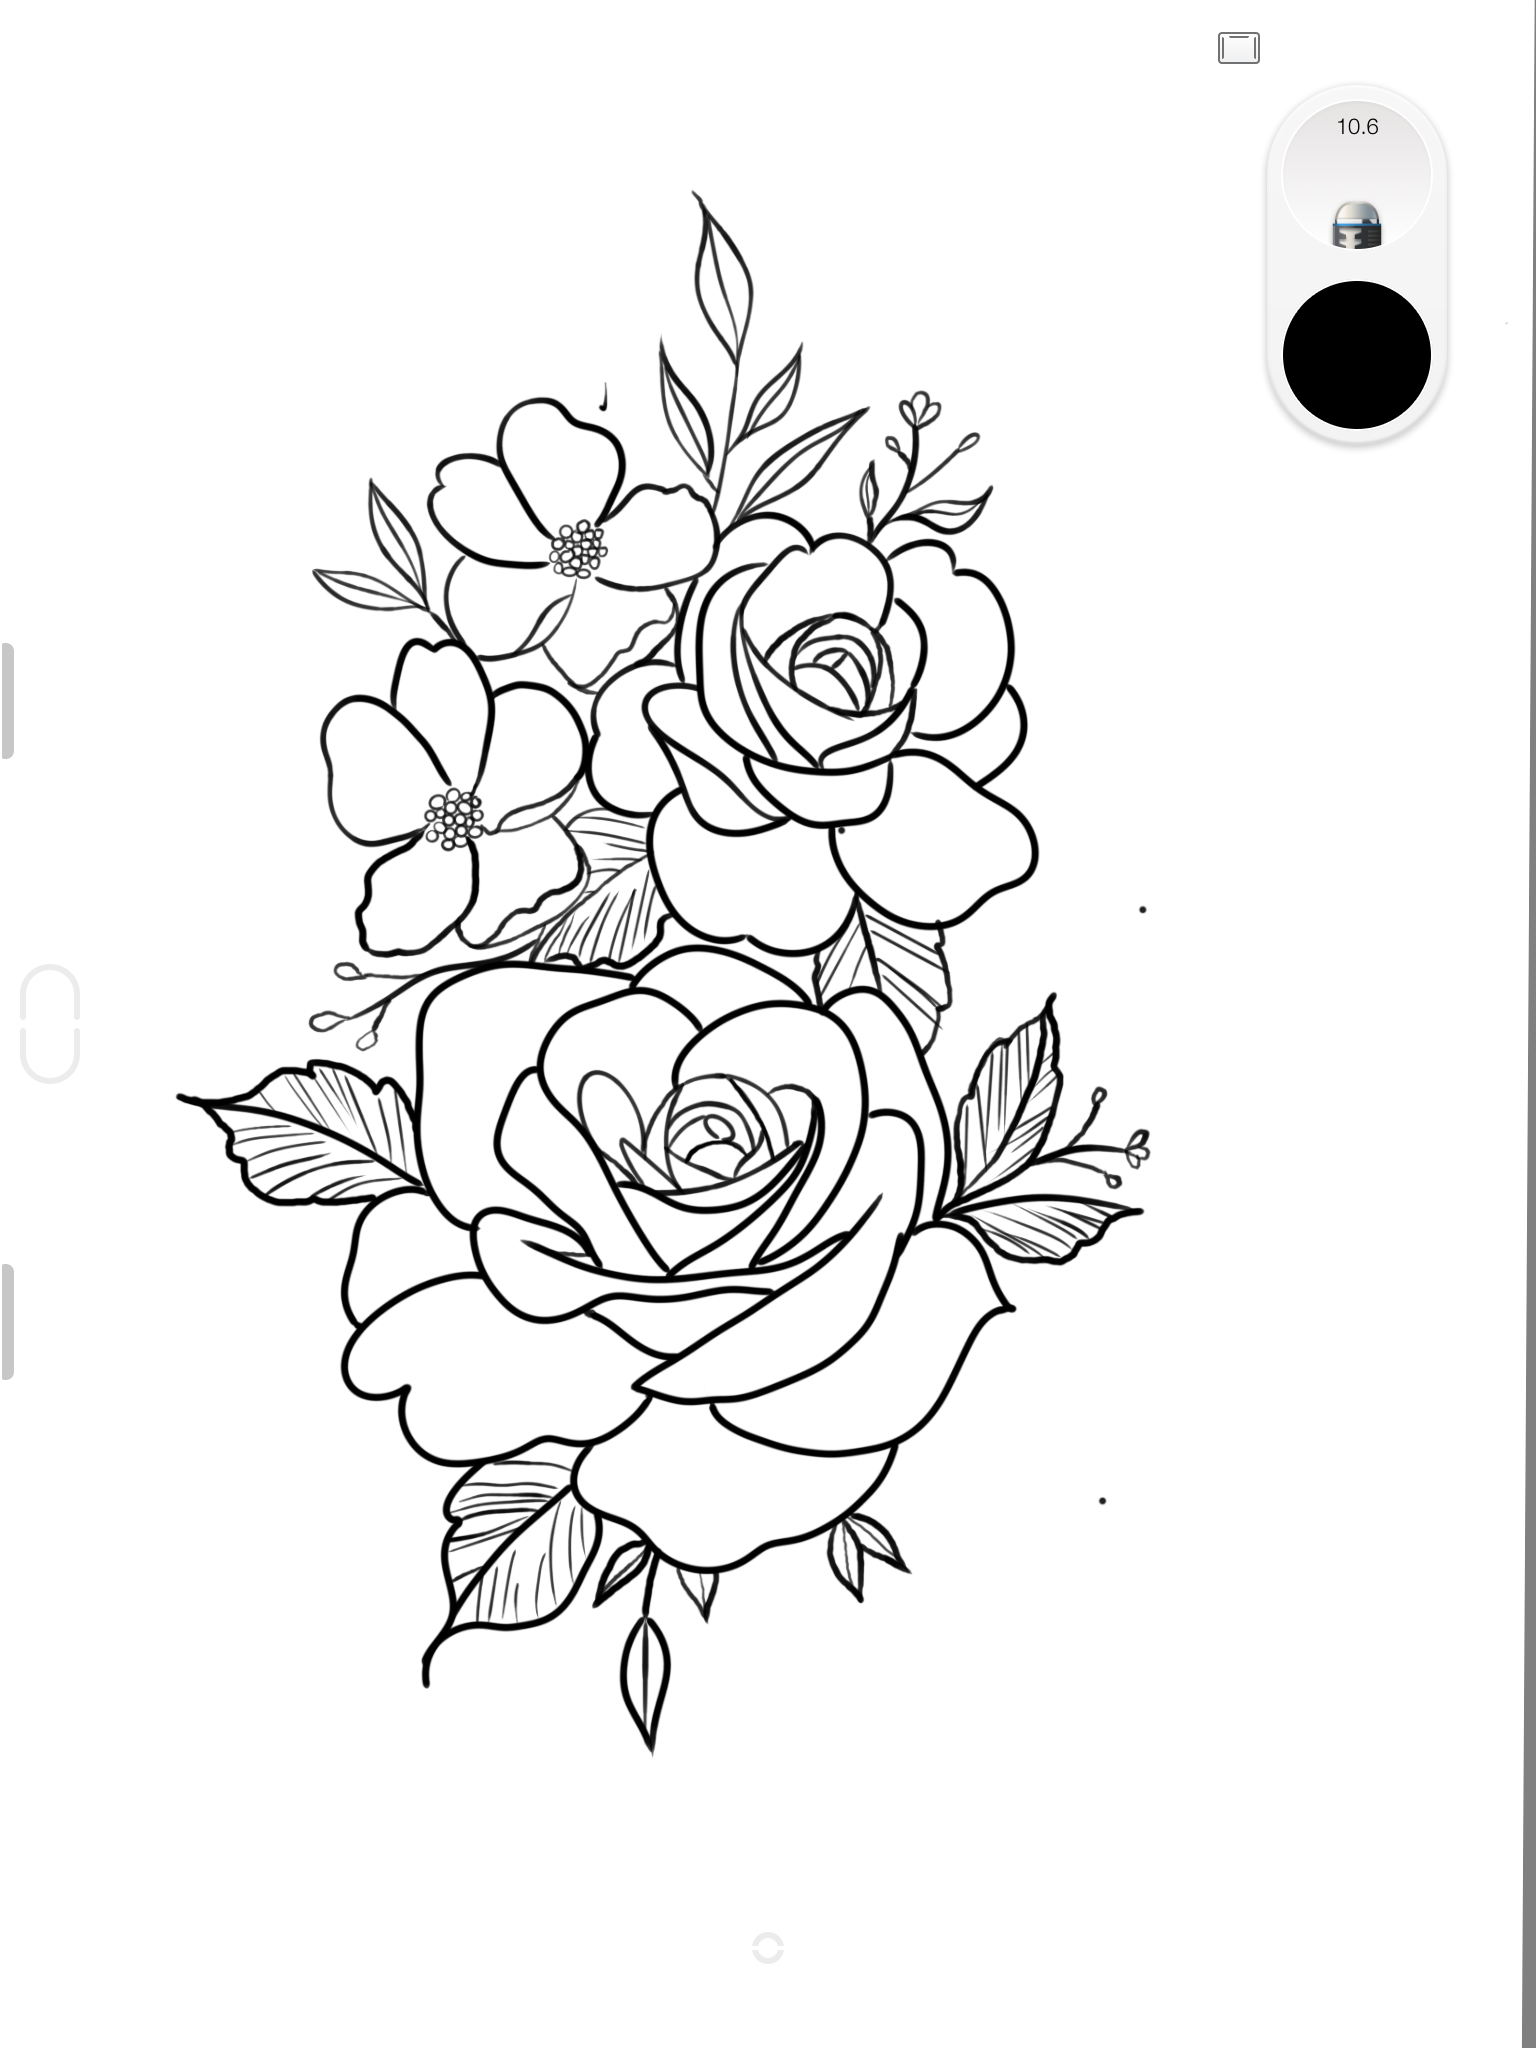 Pin By Hannah Fay On Flores E Rosas Tattoo Outline Tattoo Stencil Outline Floral Tattoo Sleeve